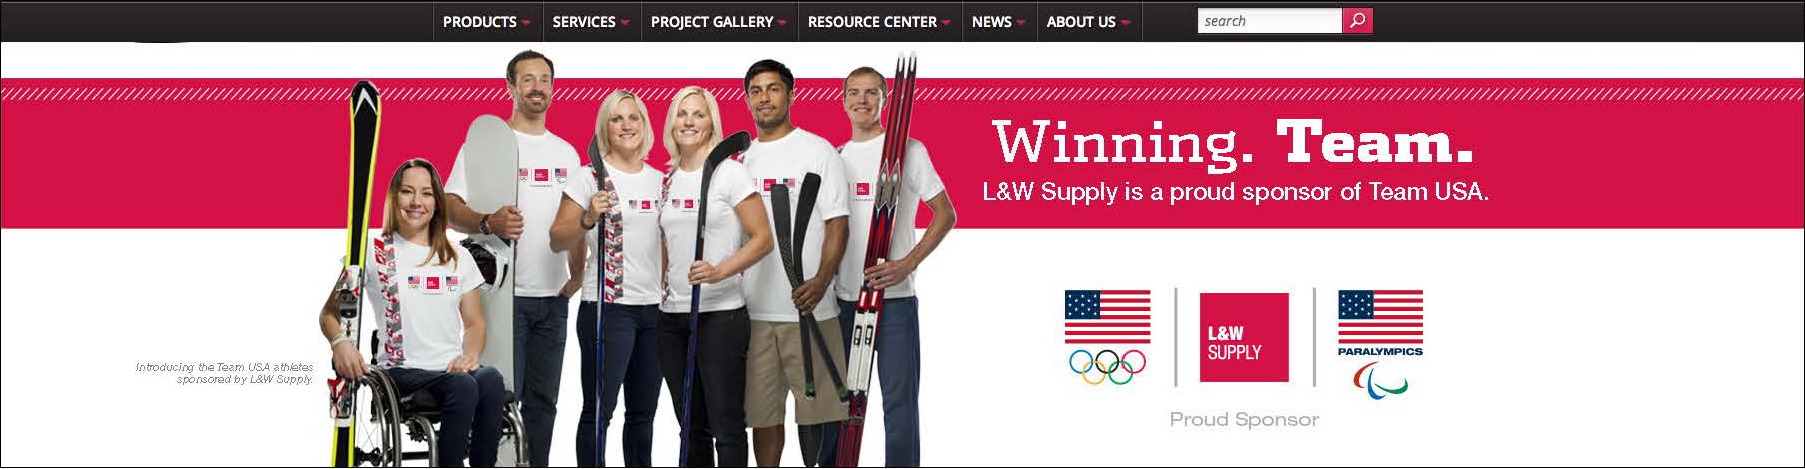 4A-161_OlympicSponsorshipHomepageBanners_Deck_v01_Page_13.jpg